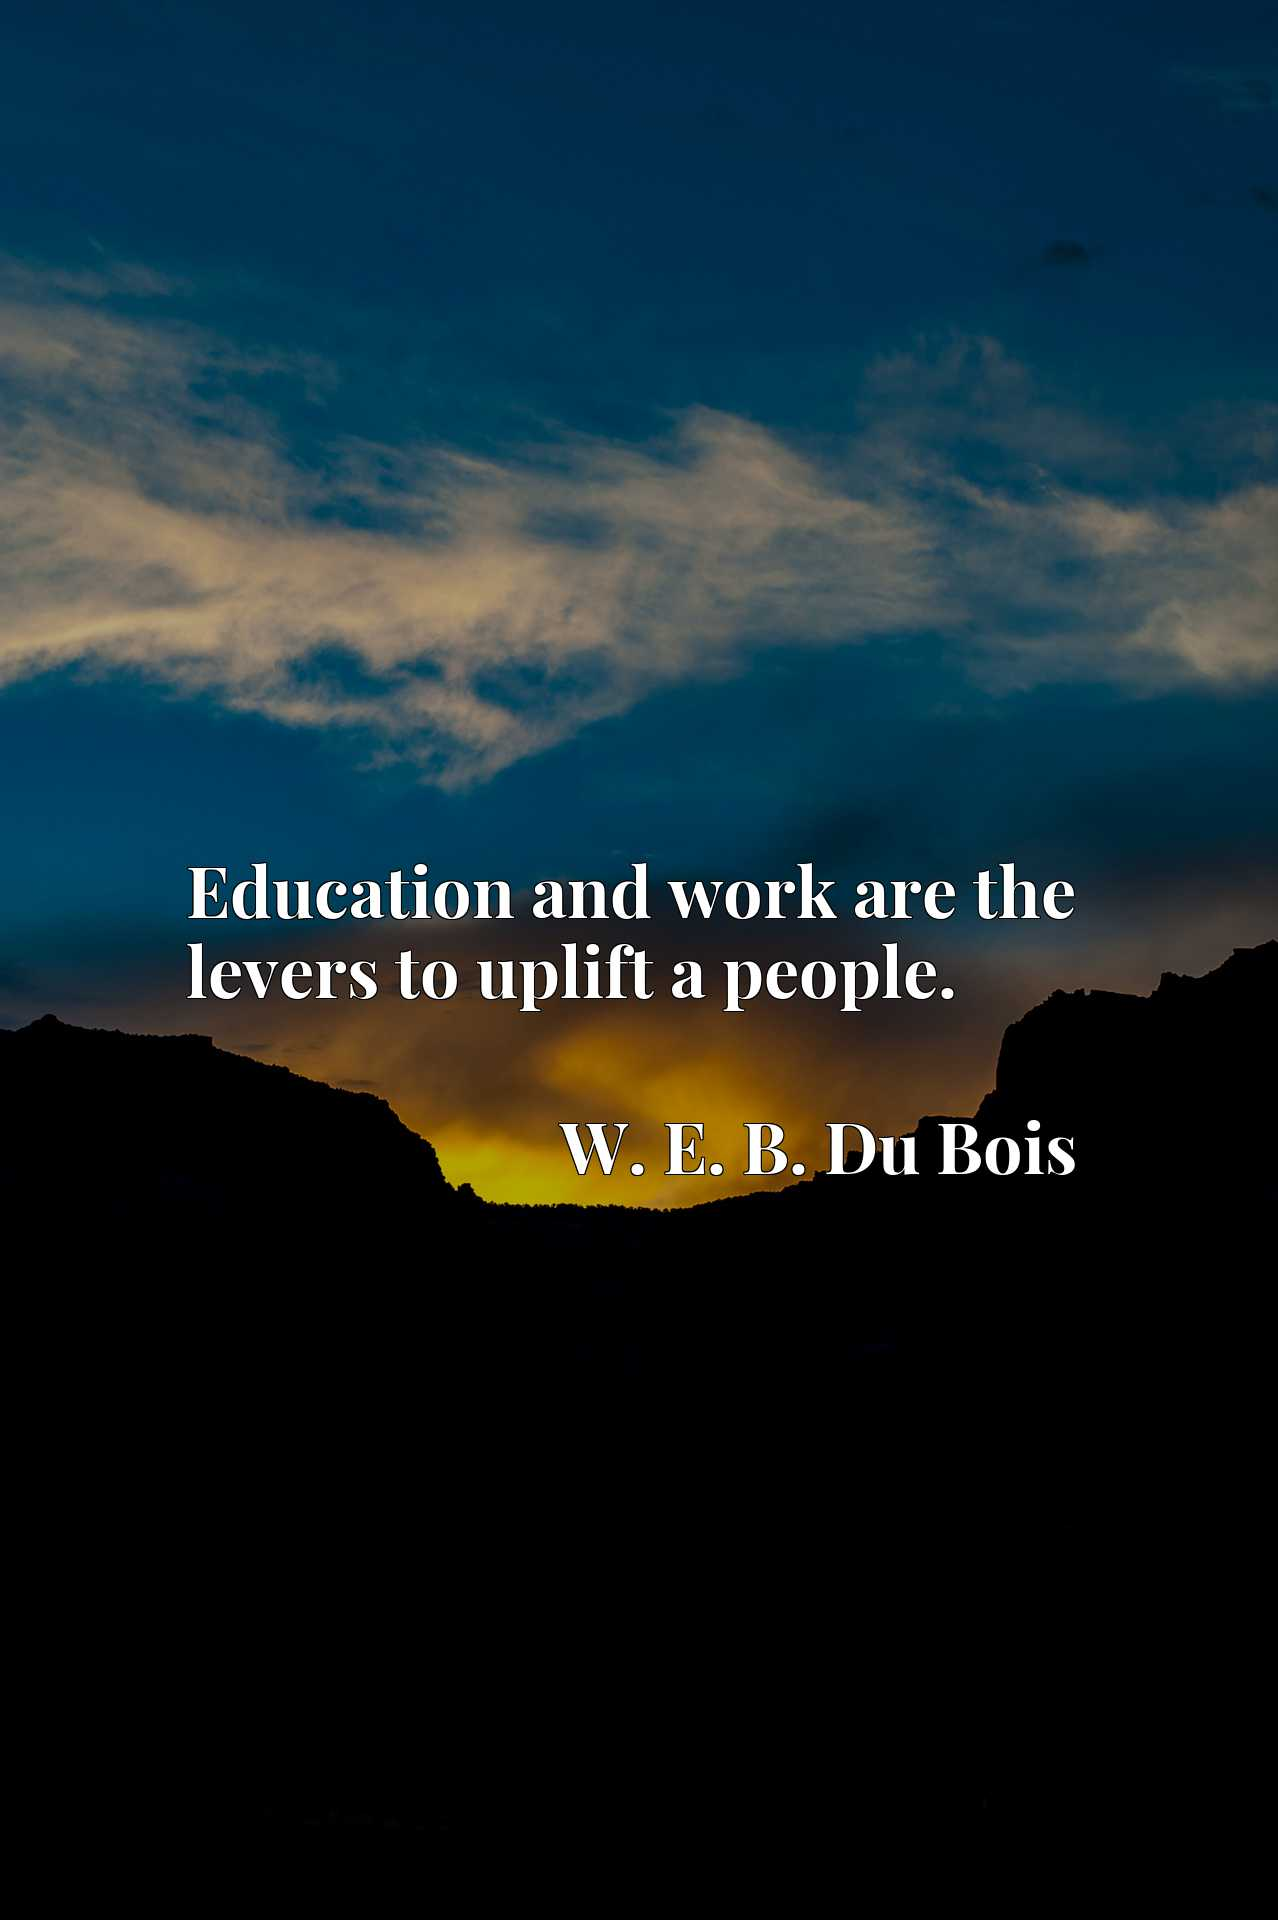 Education and work are the levers to uplift a people.